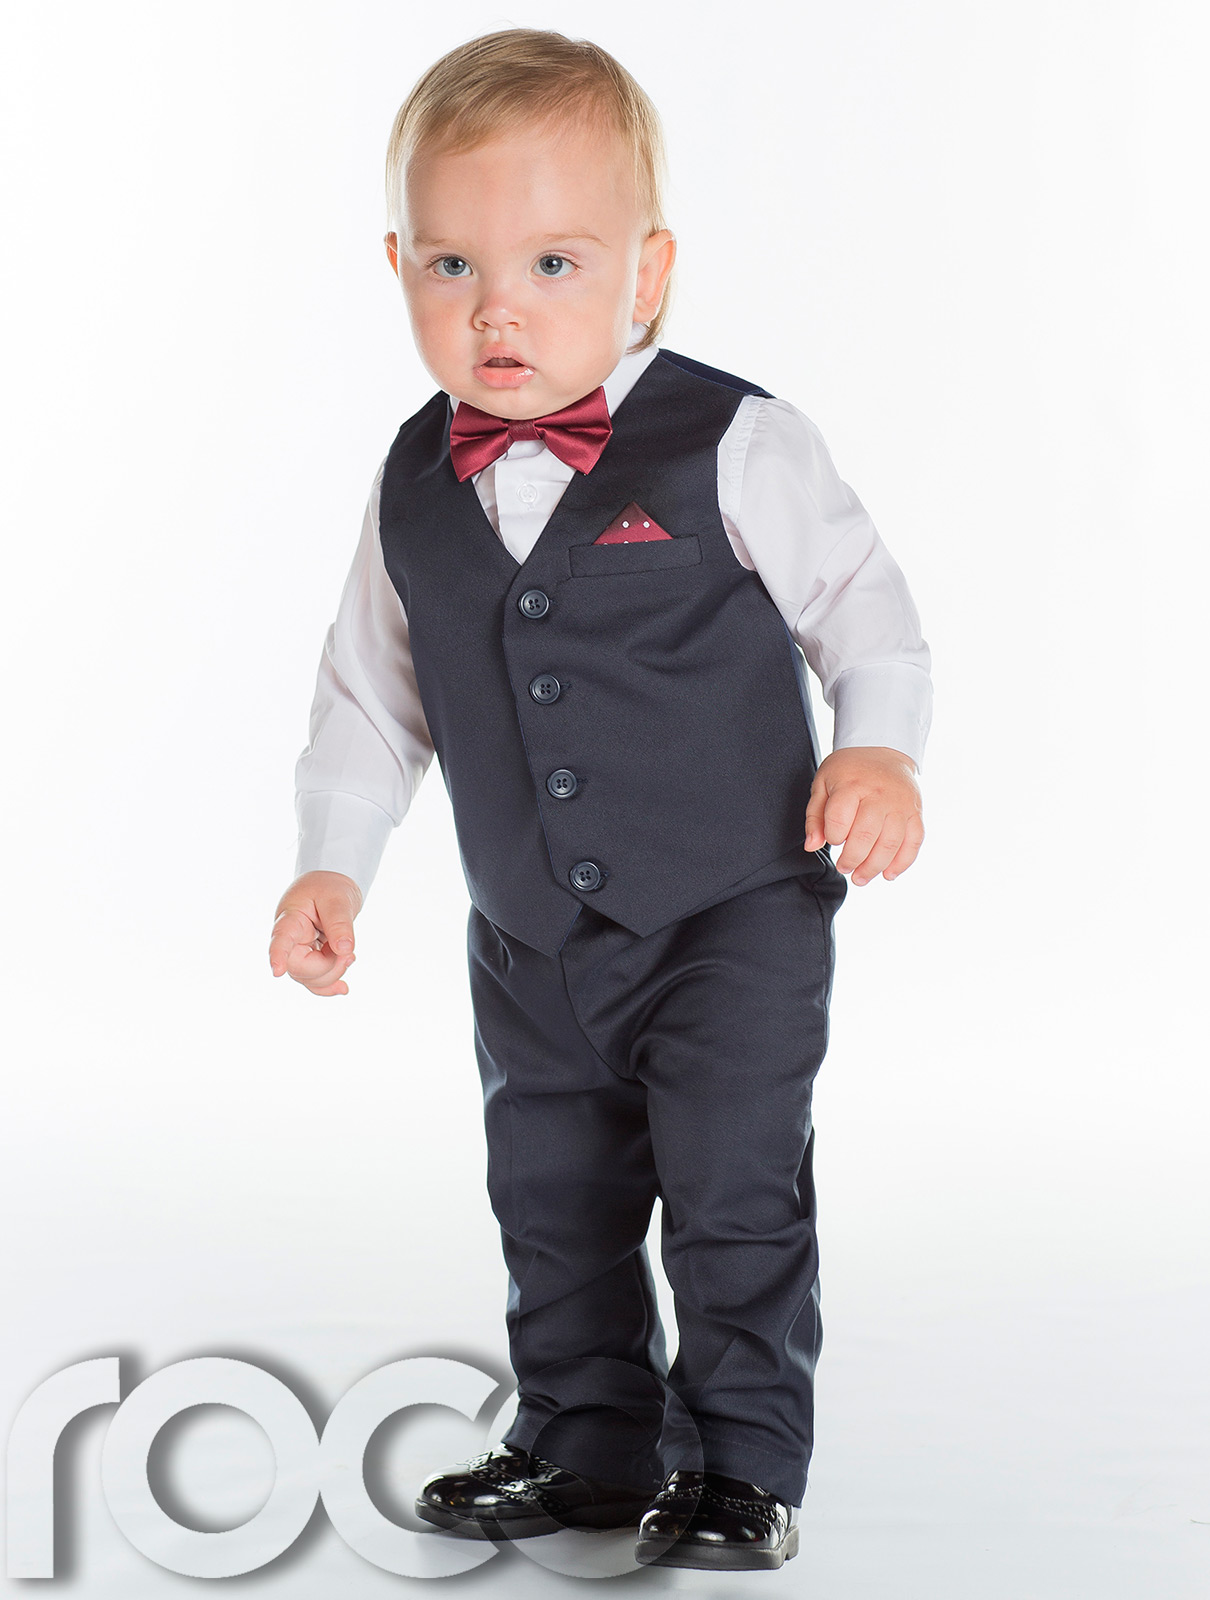 Boys Tuxedo in White with a bow tie outfit. This ensemble comes with a tuxedo jacket, vest, bow tie, shirt, and pants.5/5(46).